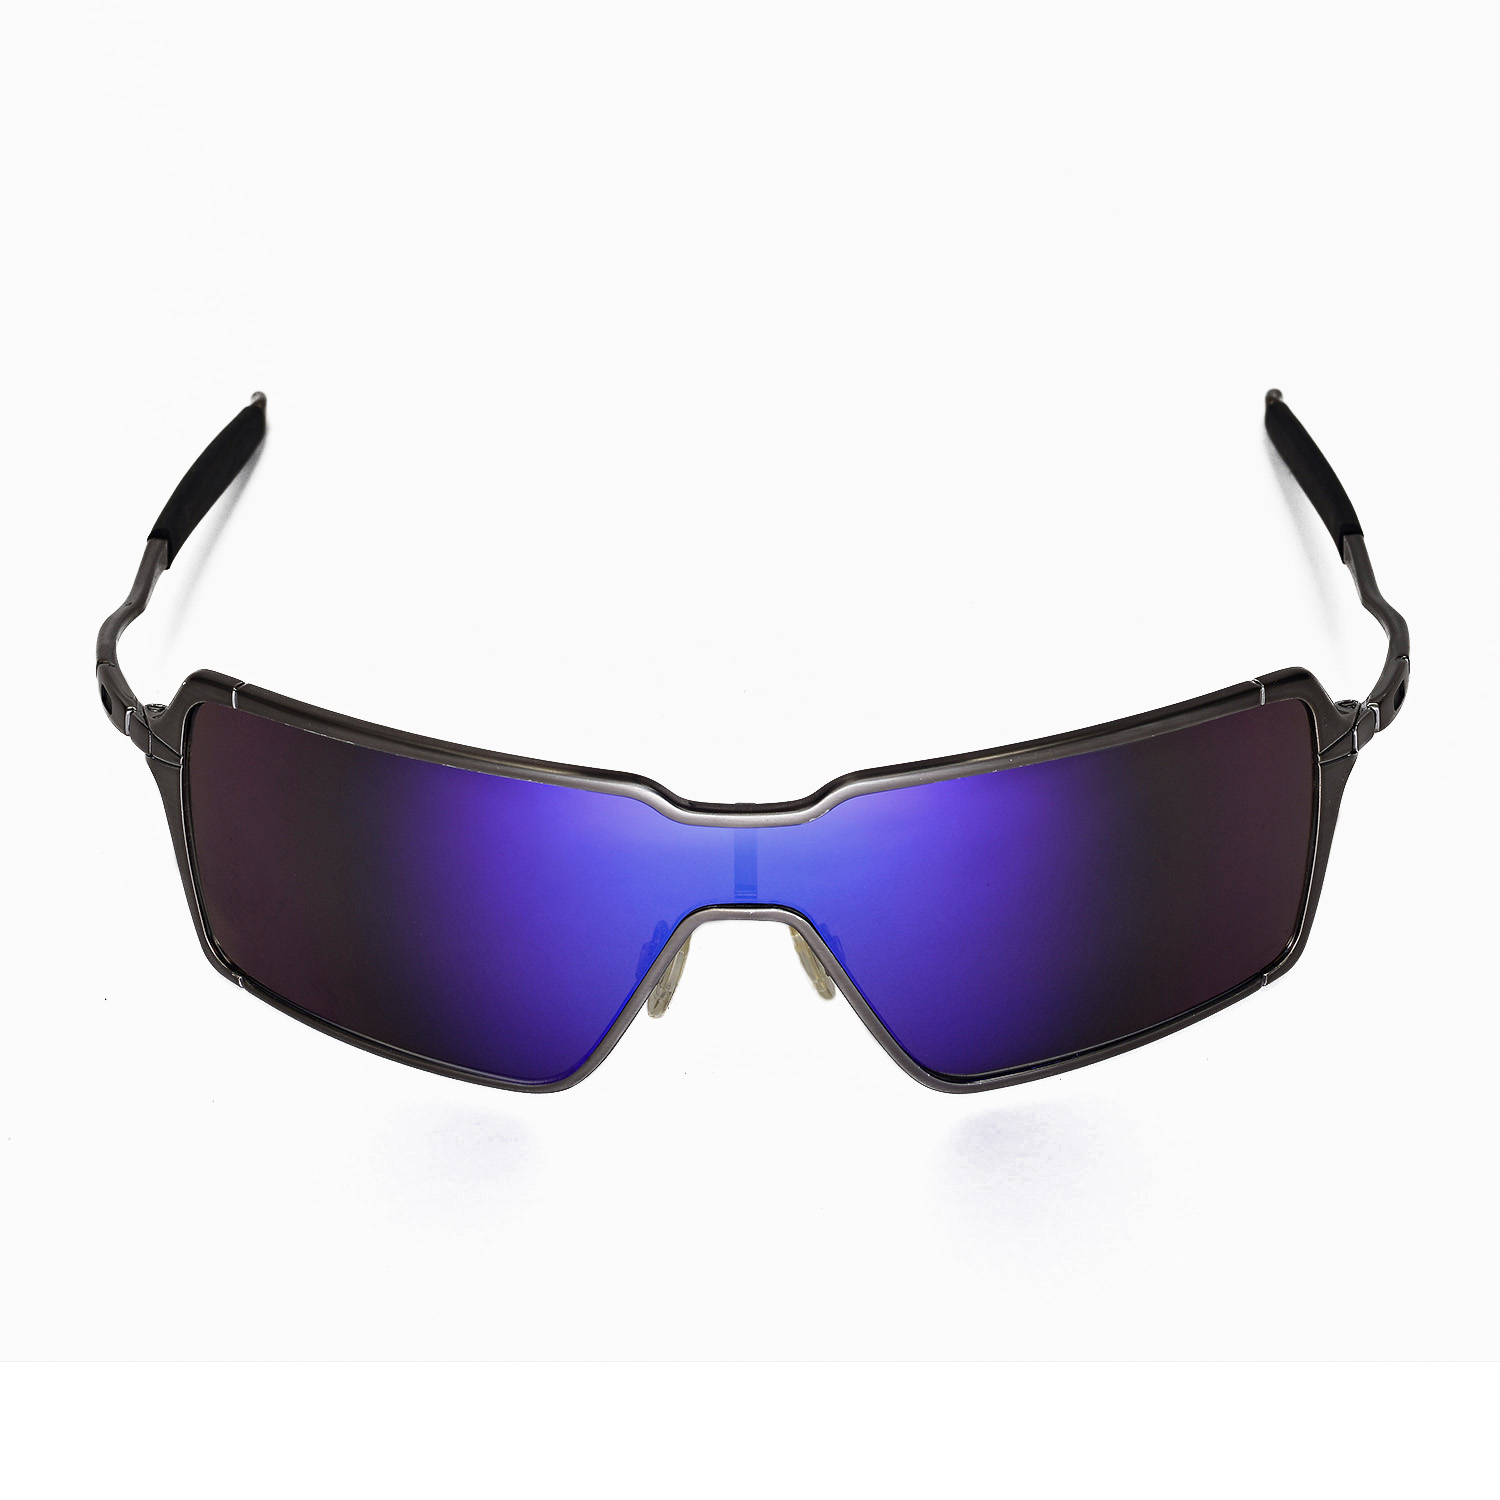 oakley probation sunglasses for sale  walleva polarized purple lenses for oakley probation x1; walleva microfiber lens cleaning cloth x1